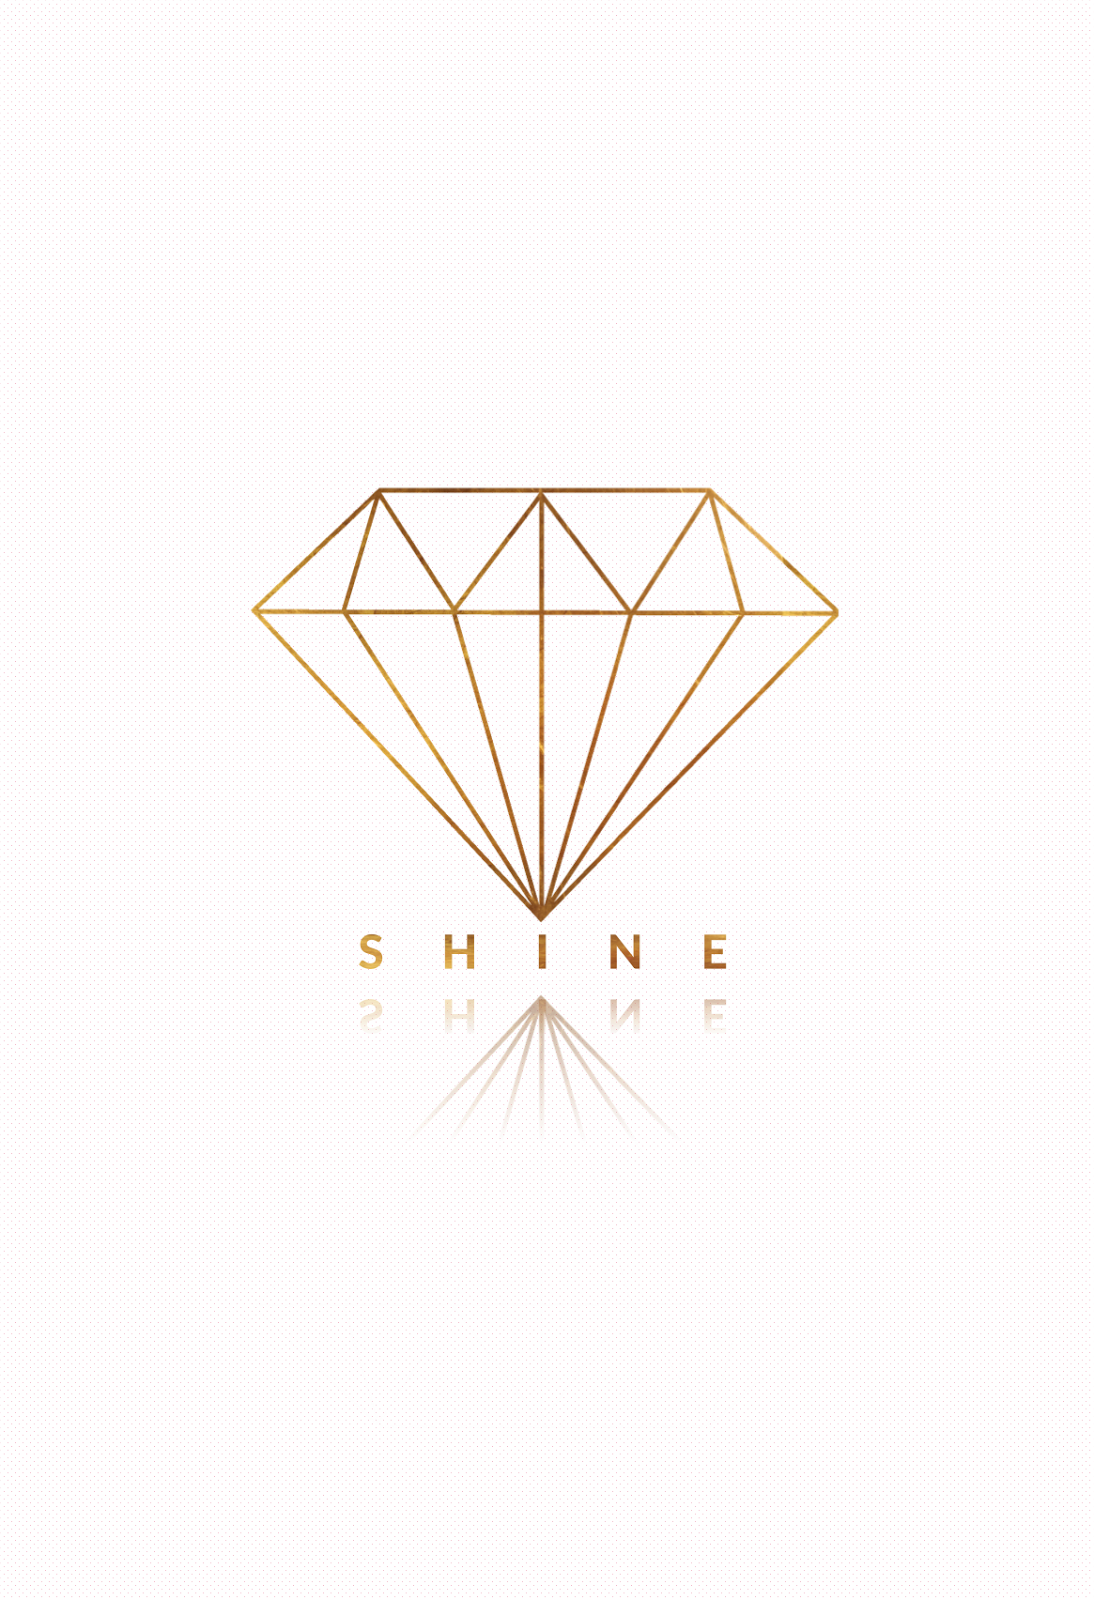 diamond diamonds shine do investments practice bright clients shiny accountingweb client